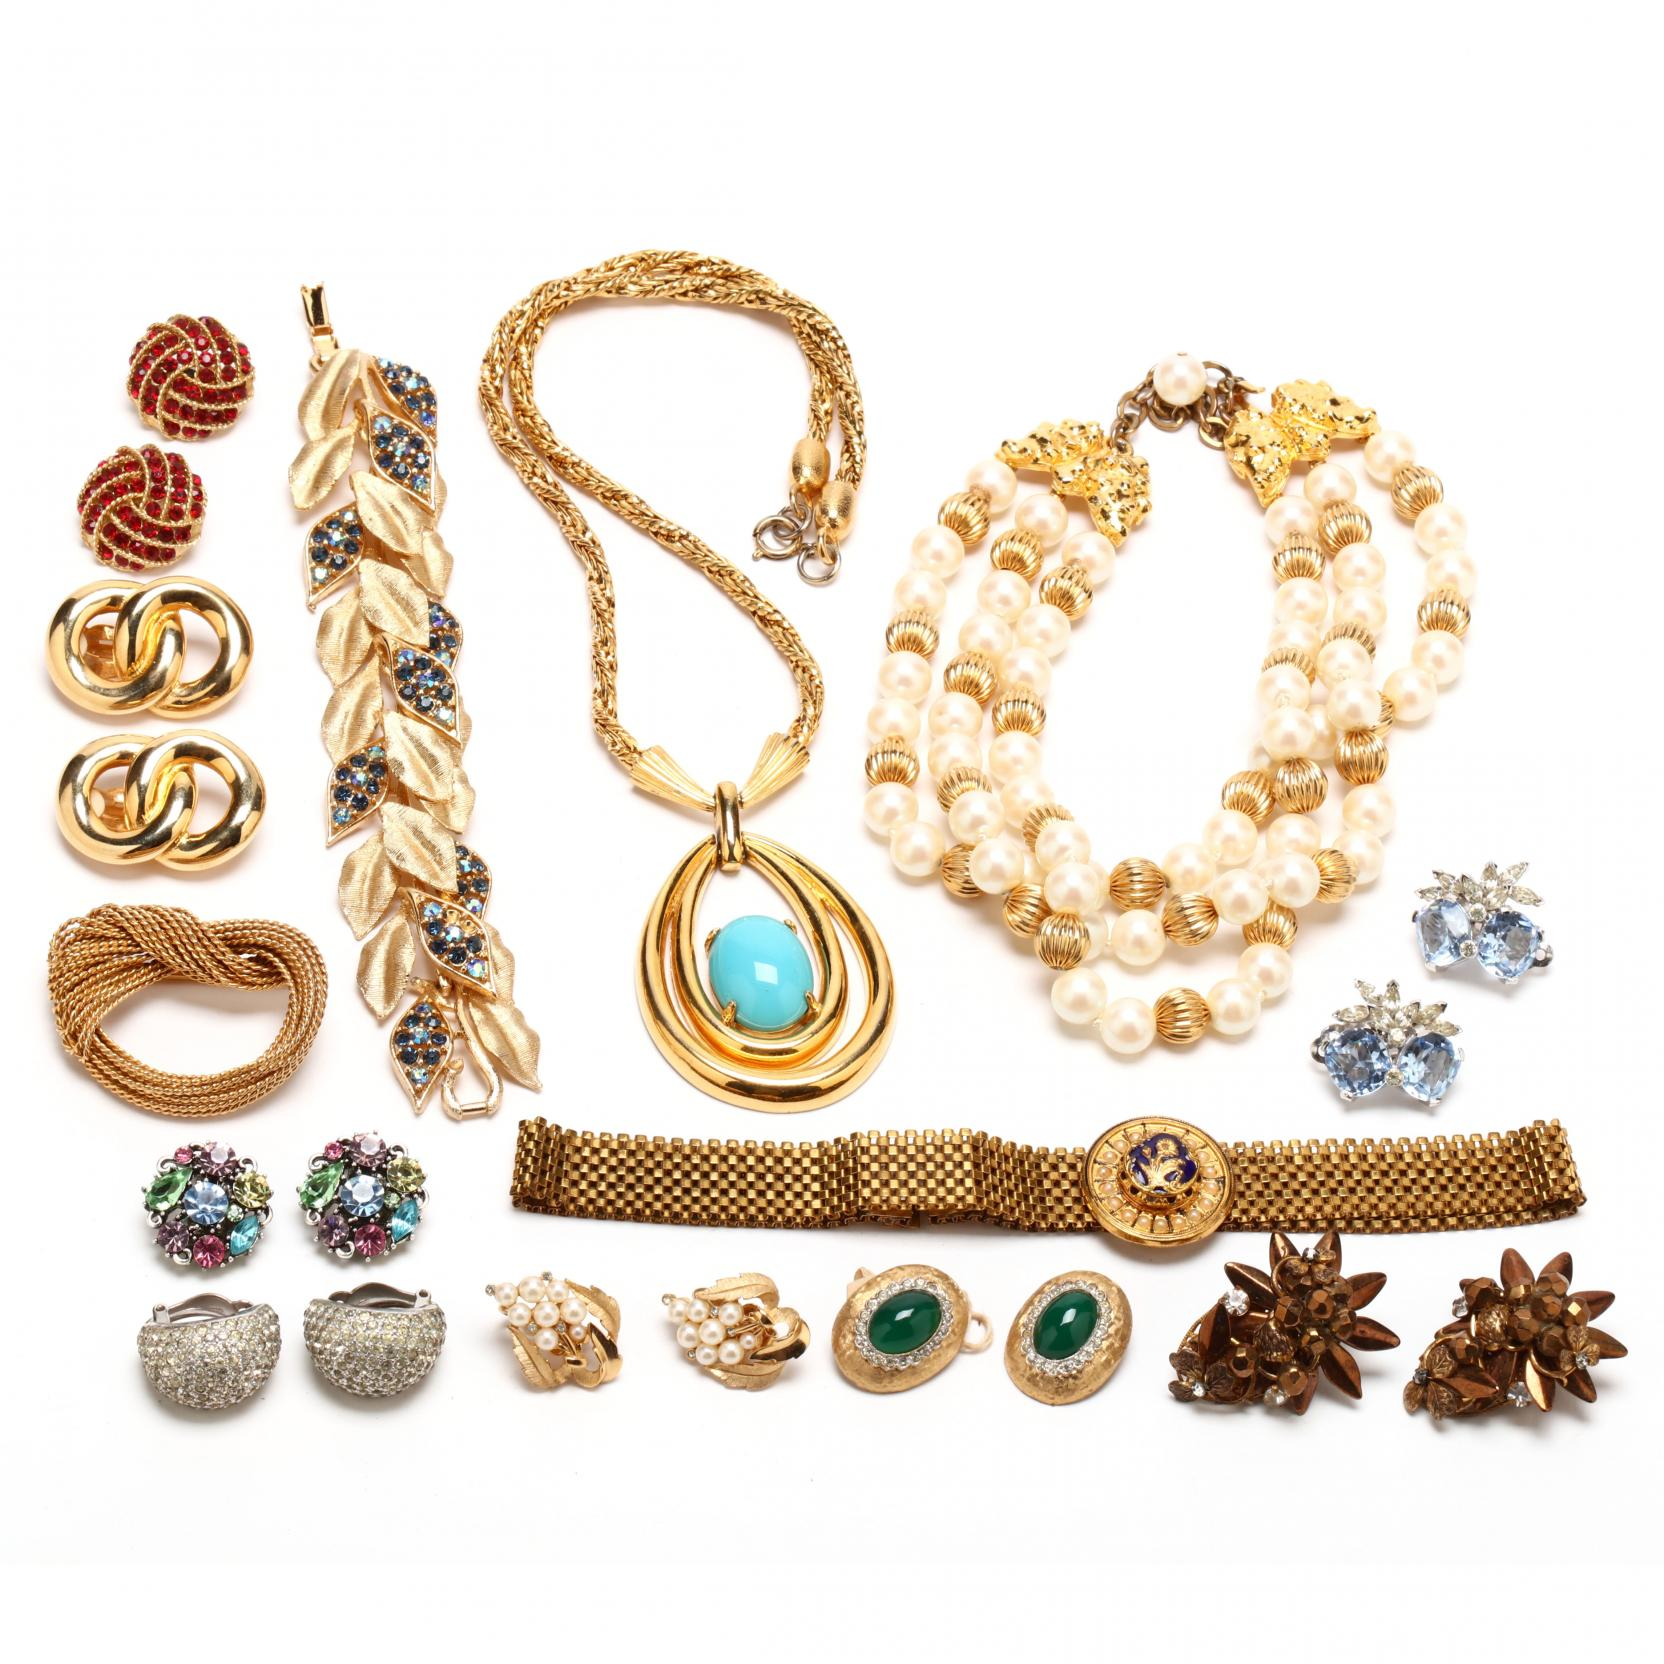 a-group-of-designer-fashion-jewelry